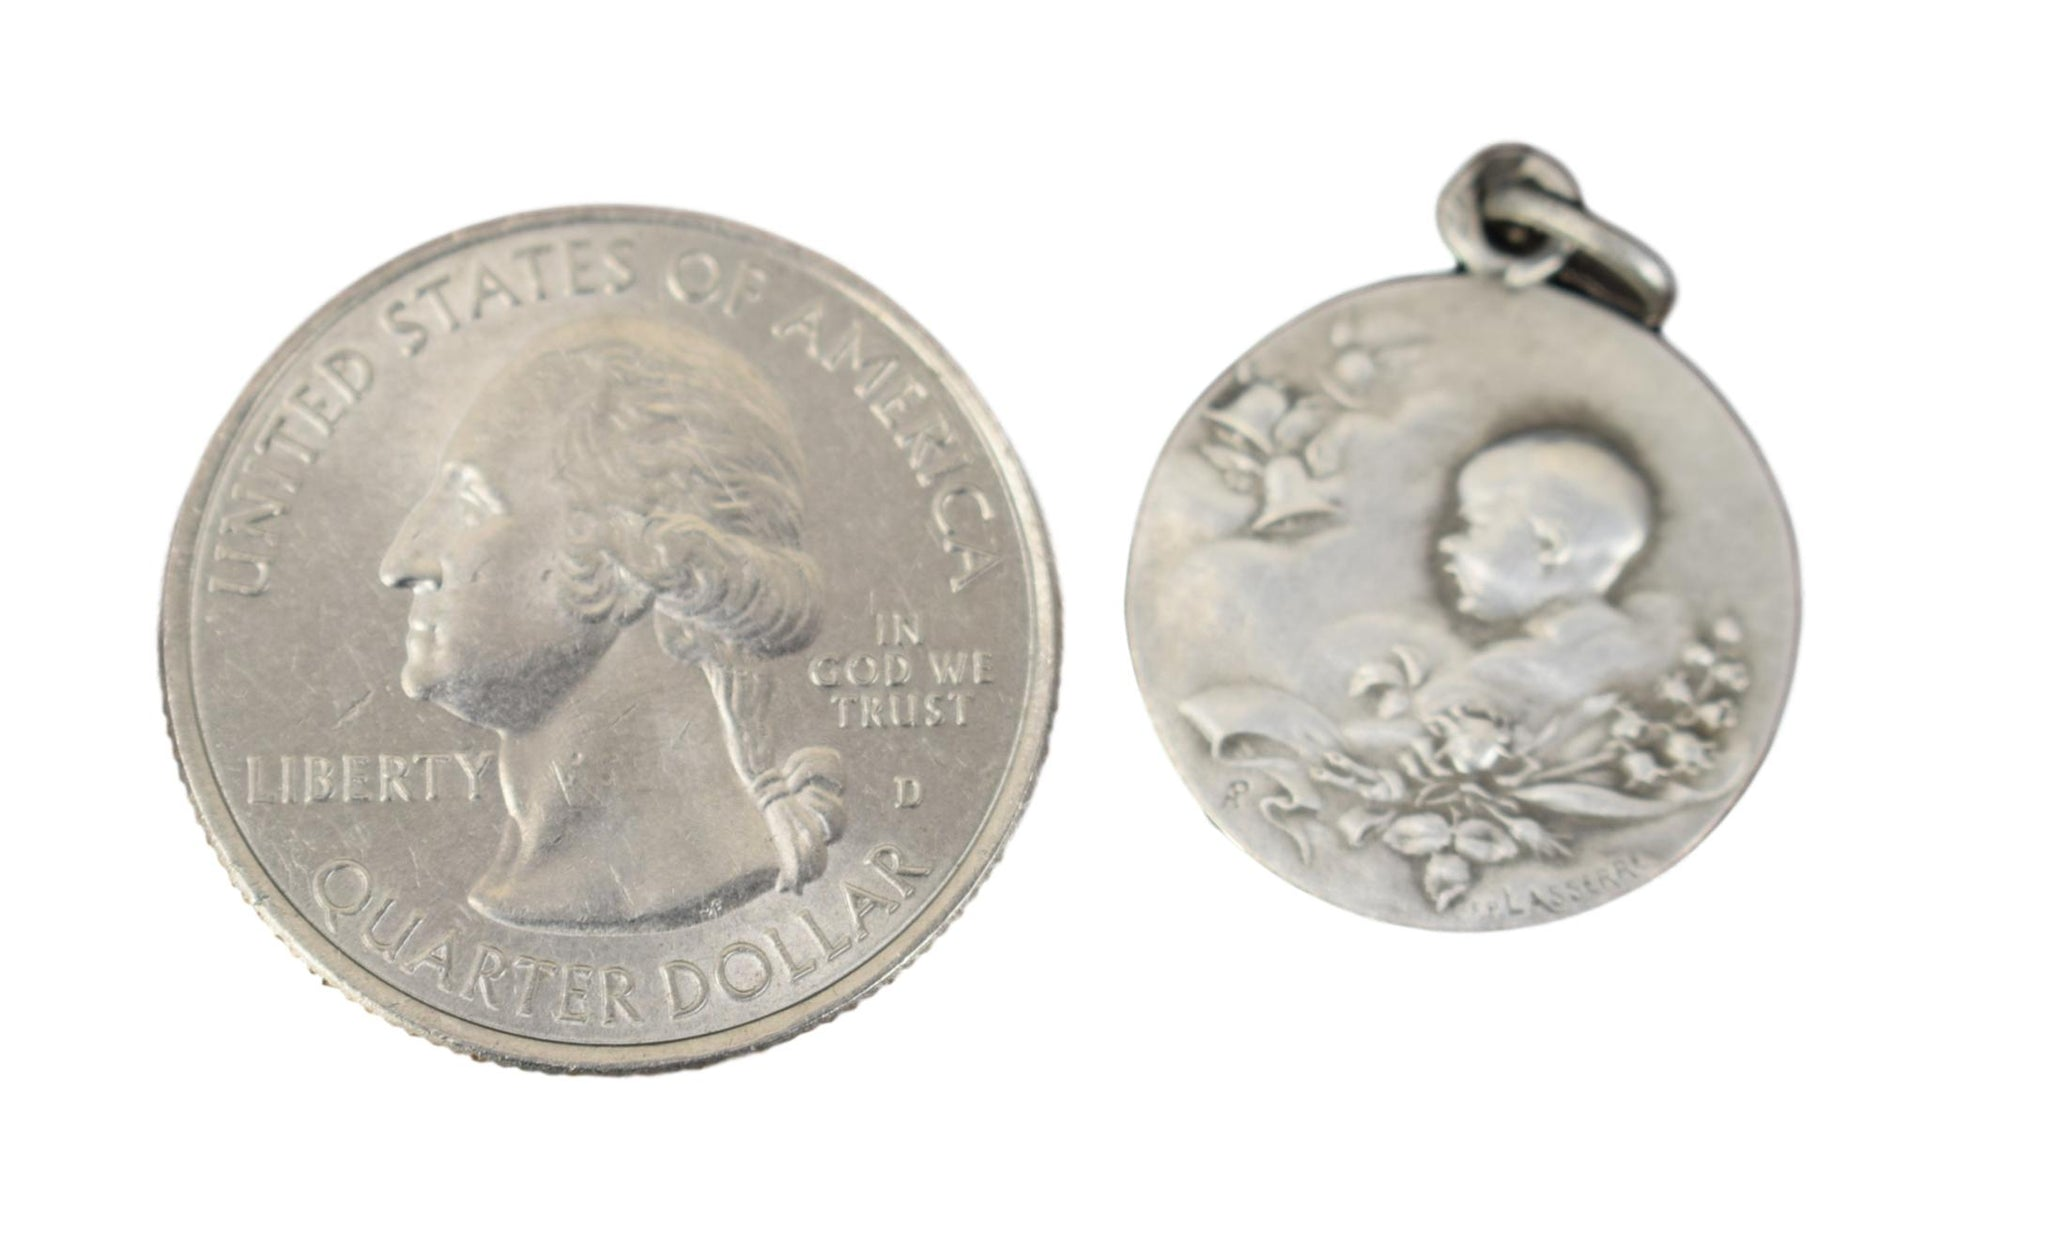 Birth Gift Medal - Charmantiques